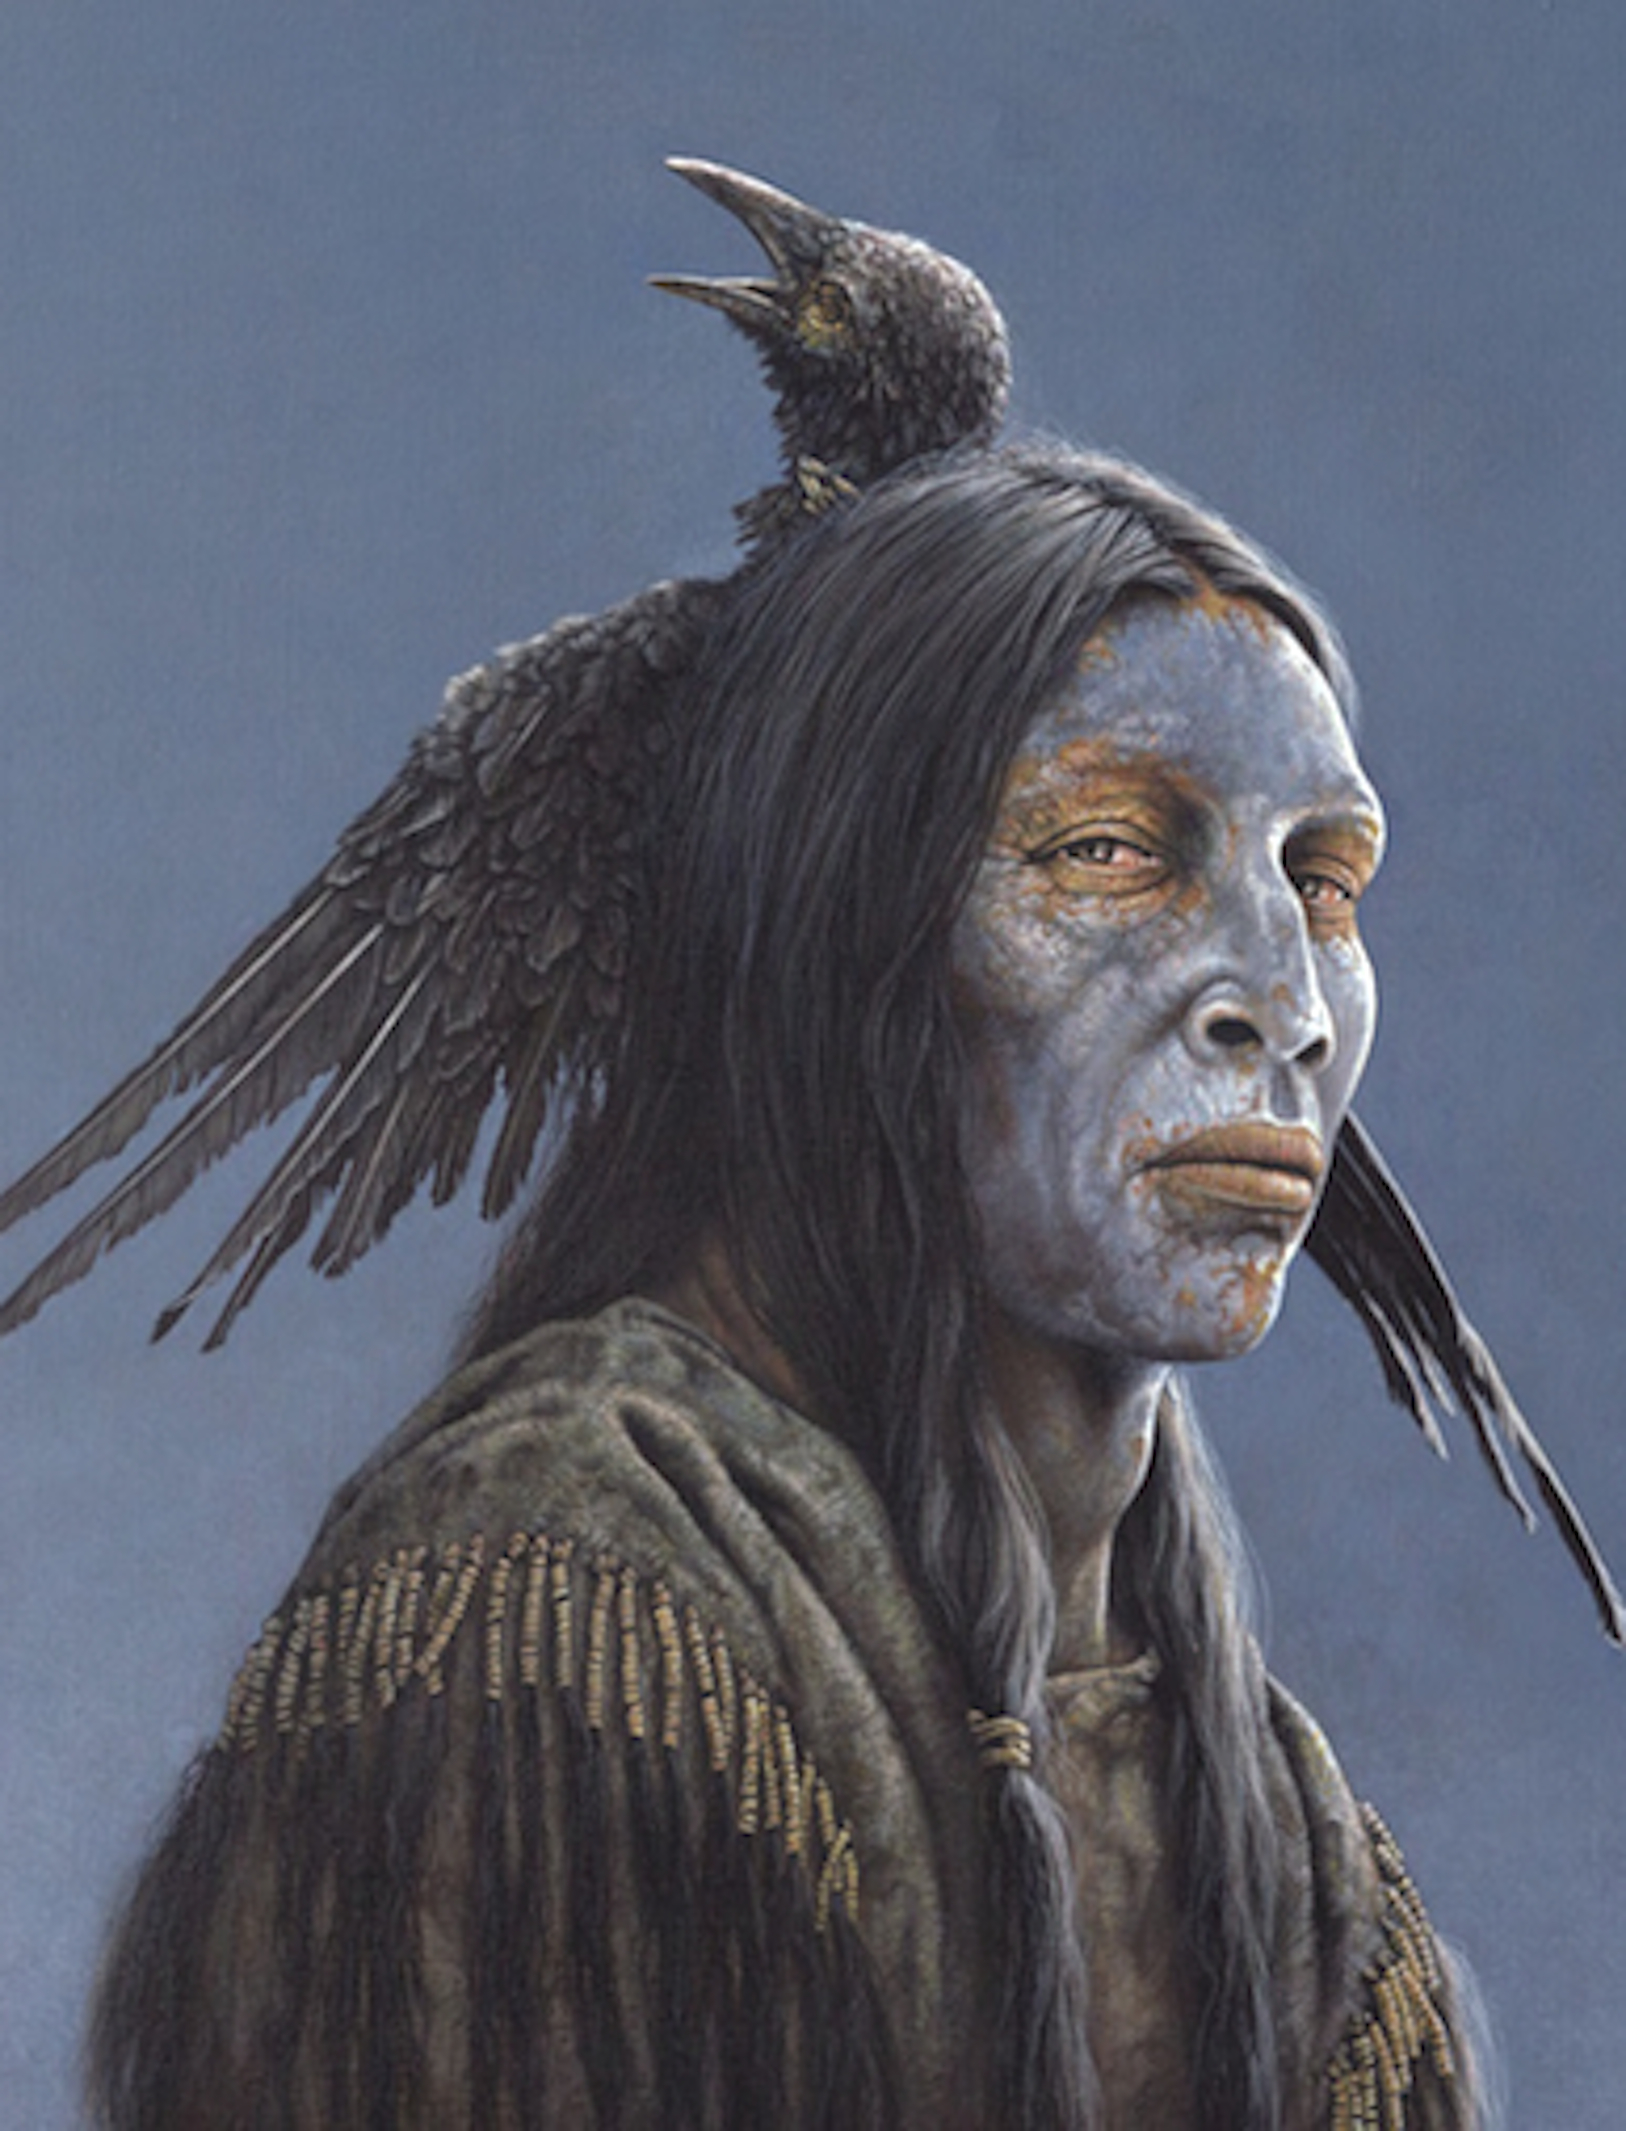 nativeamericanart_nightfall